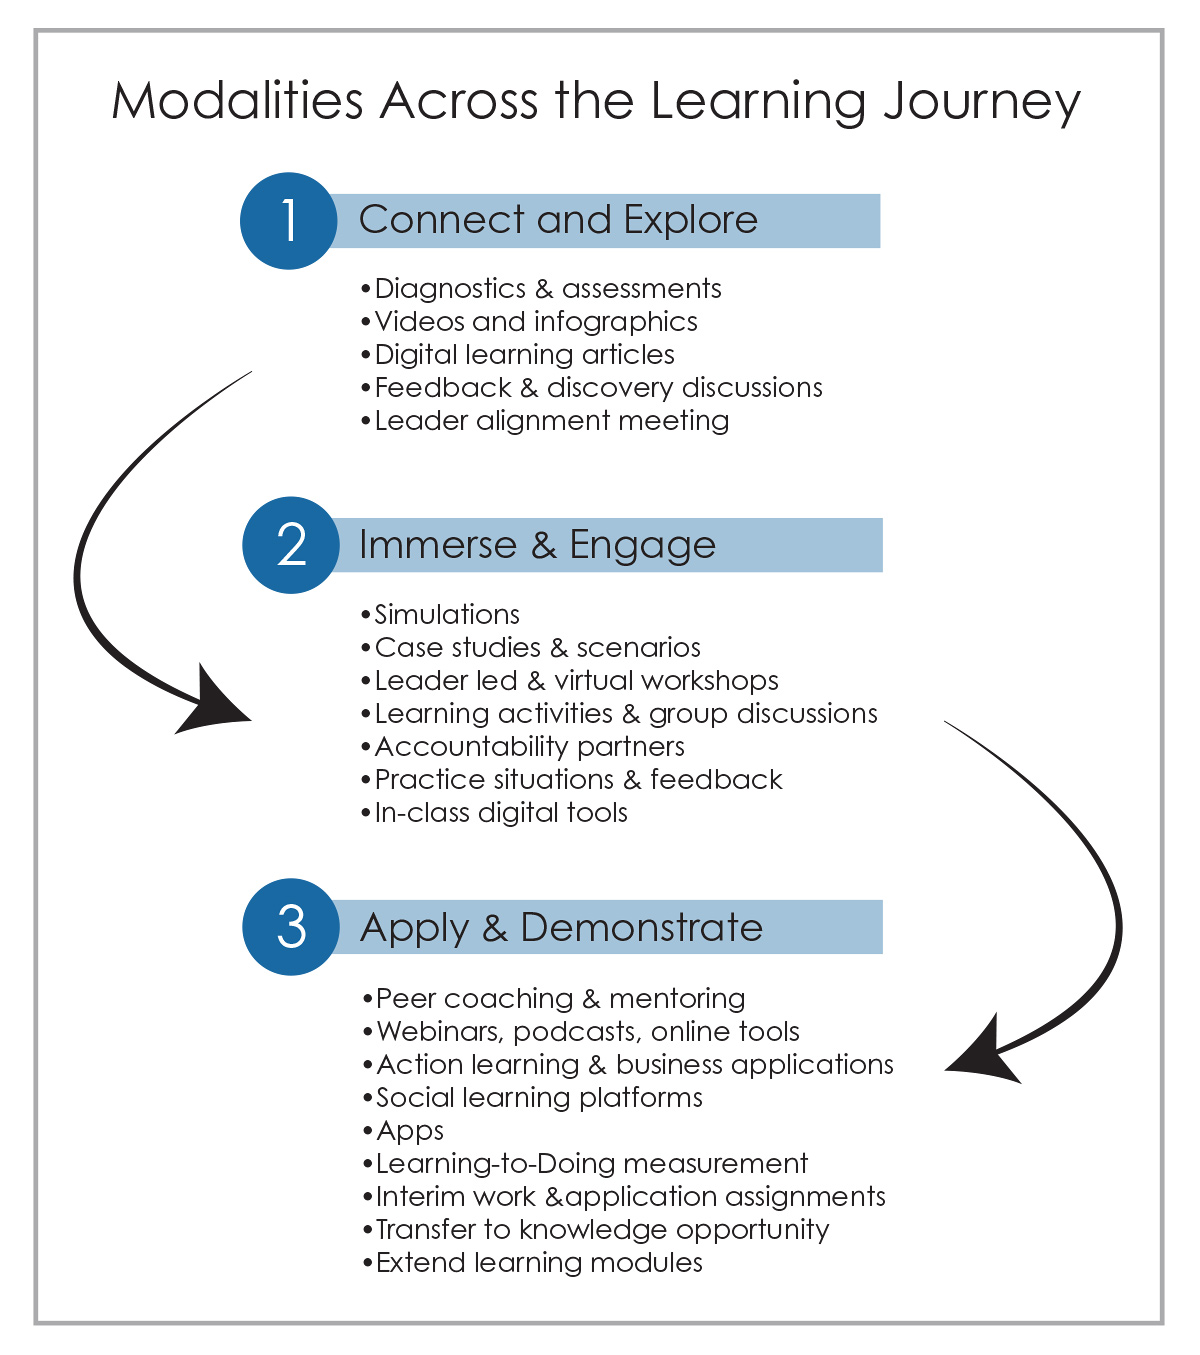 Modalities Across The Learning Journey